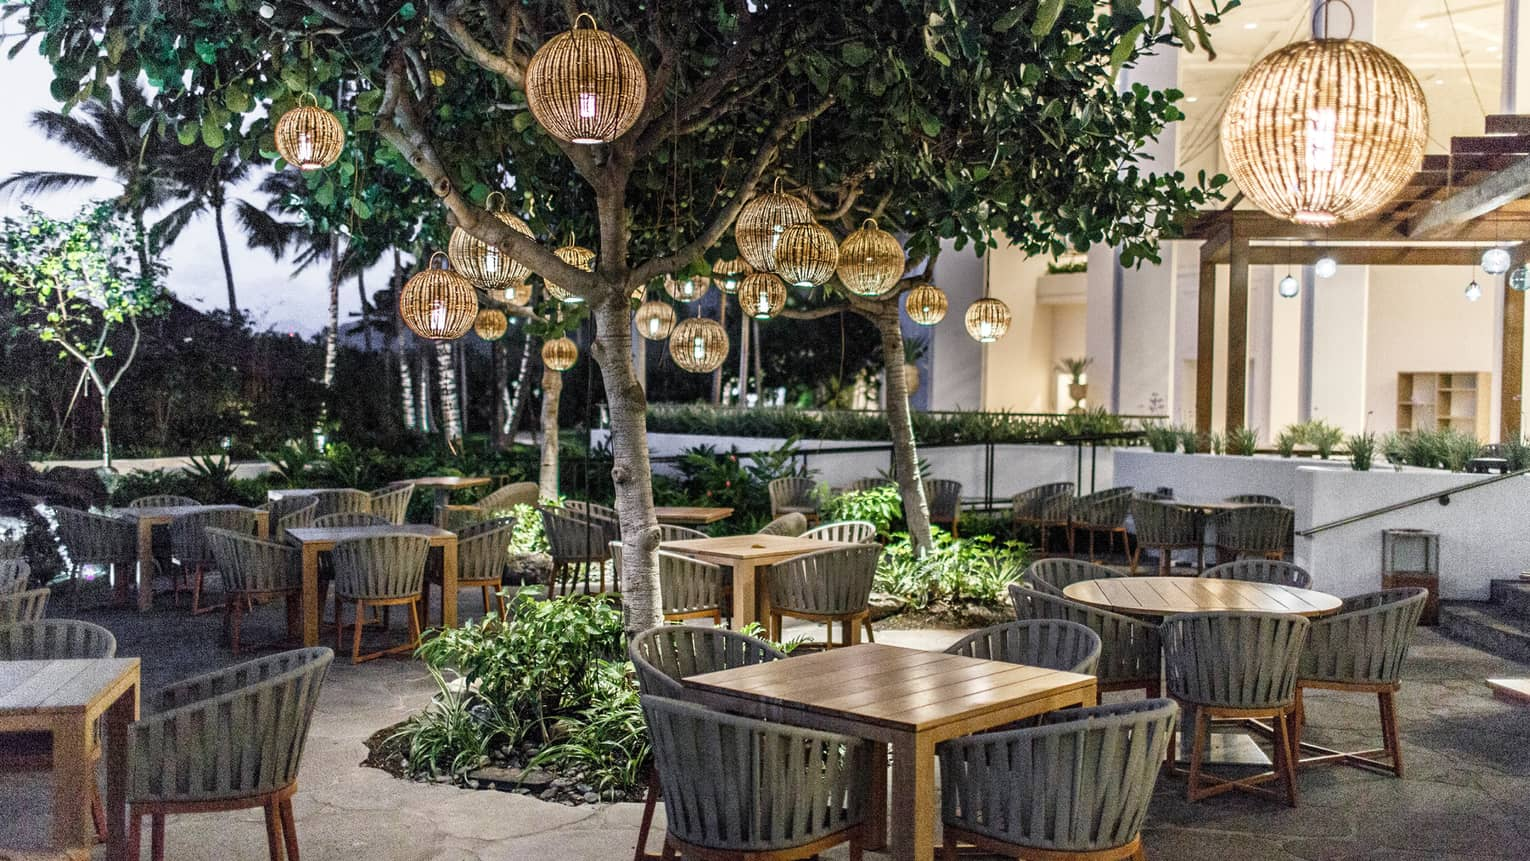 Noe restaurant patio with dining tables, chairs under round rattan lanterns from trees